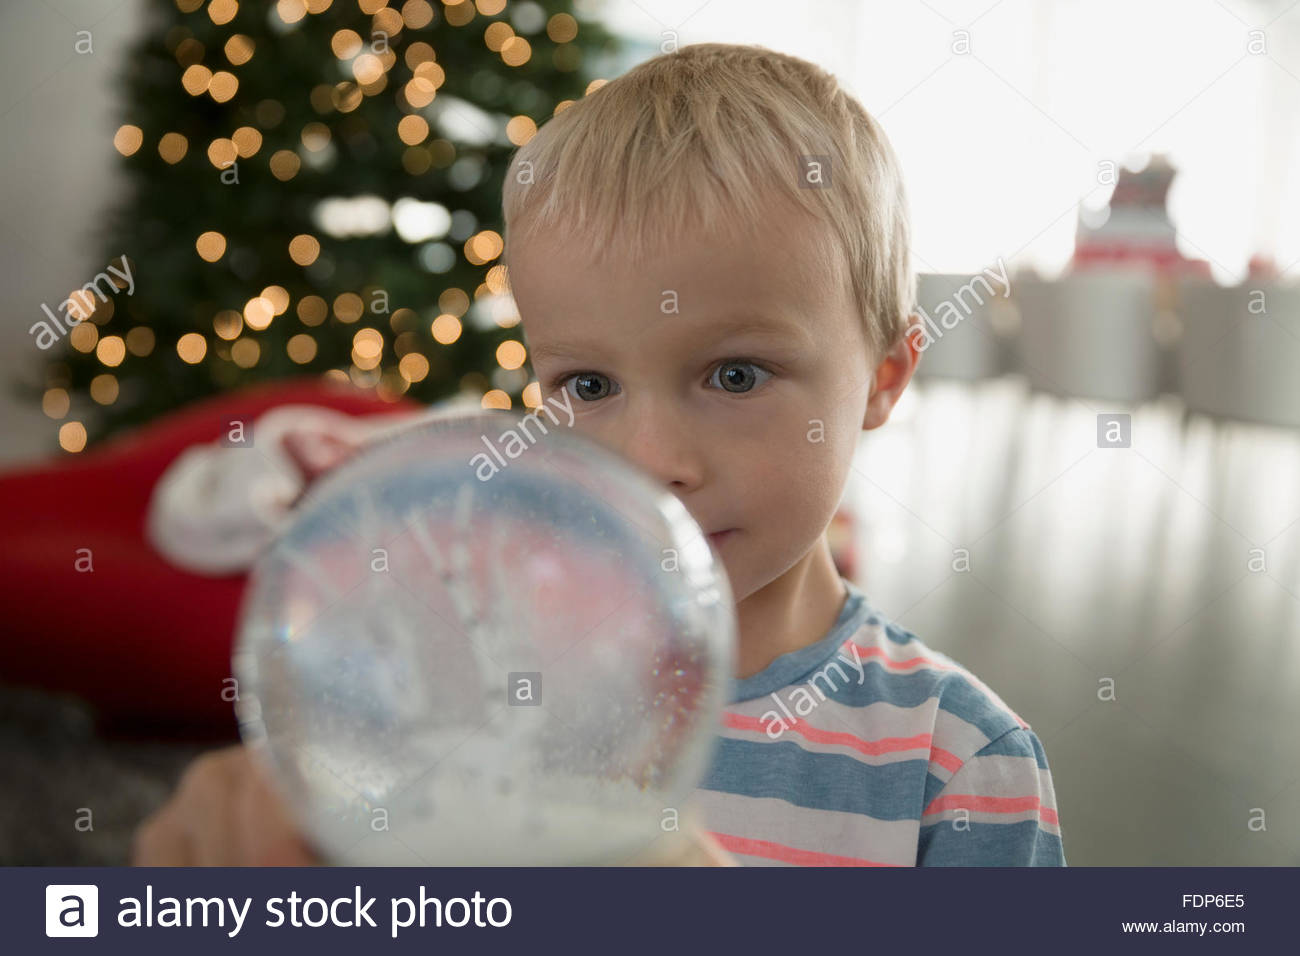 Wide-eyed boy looking at snow globe - Stock Image